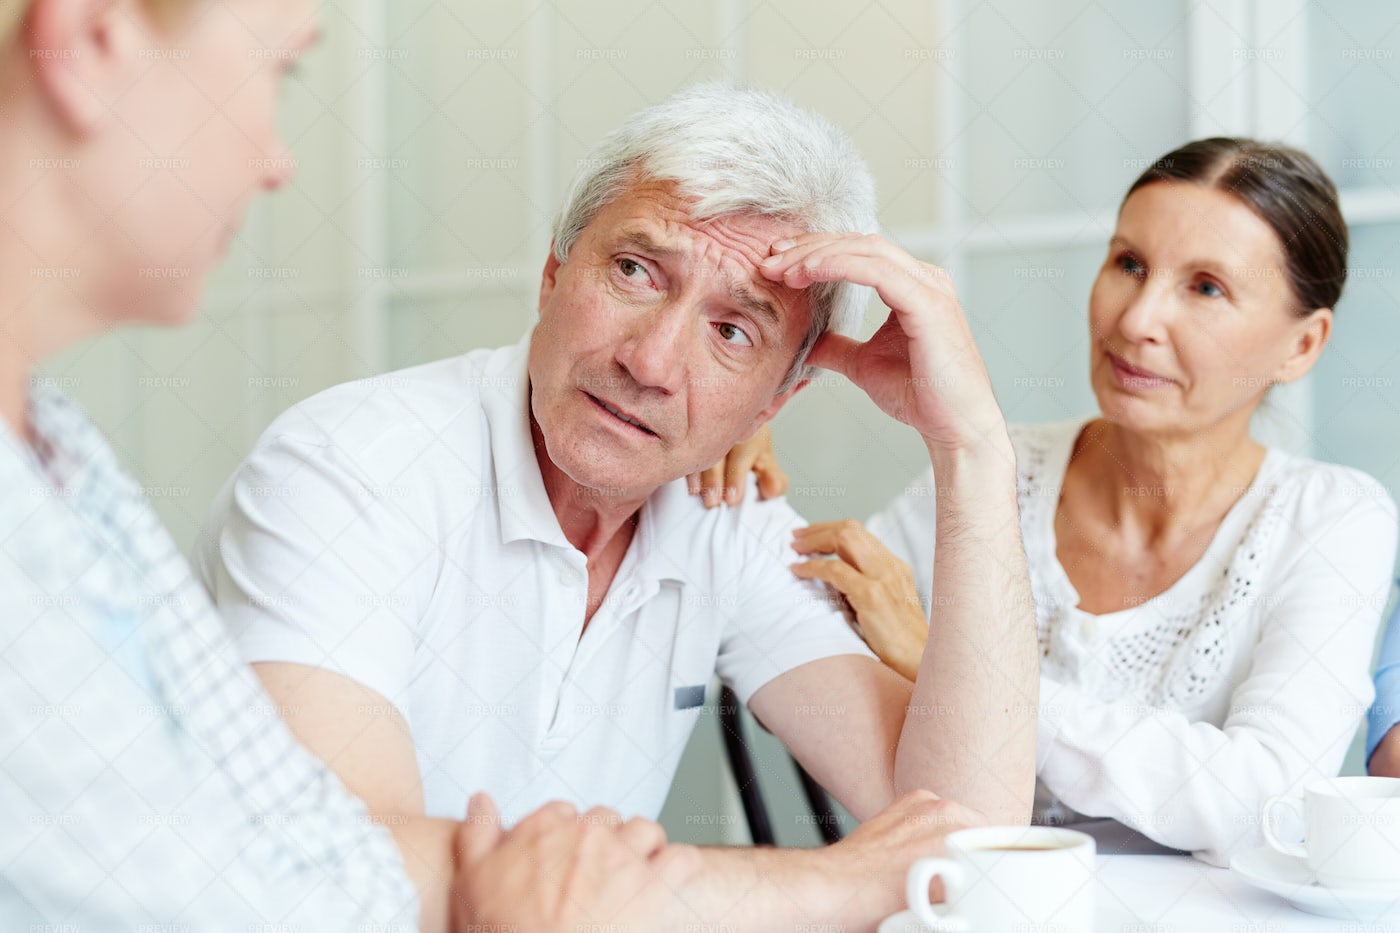 Psychological Support: Stock Photos